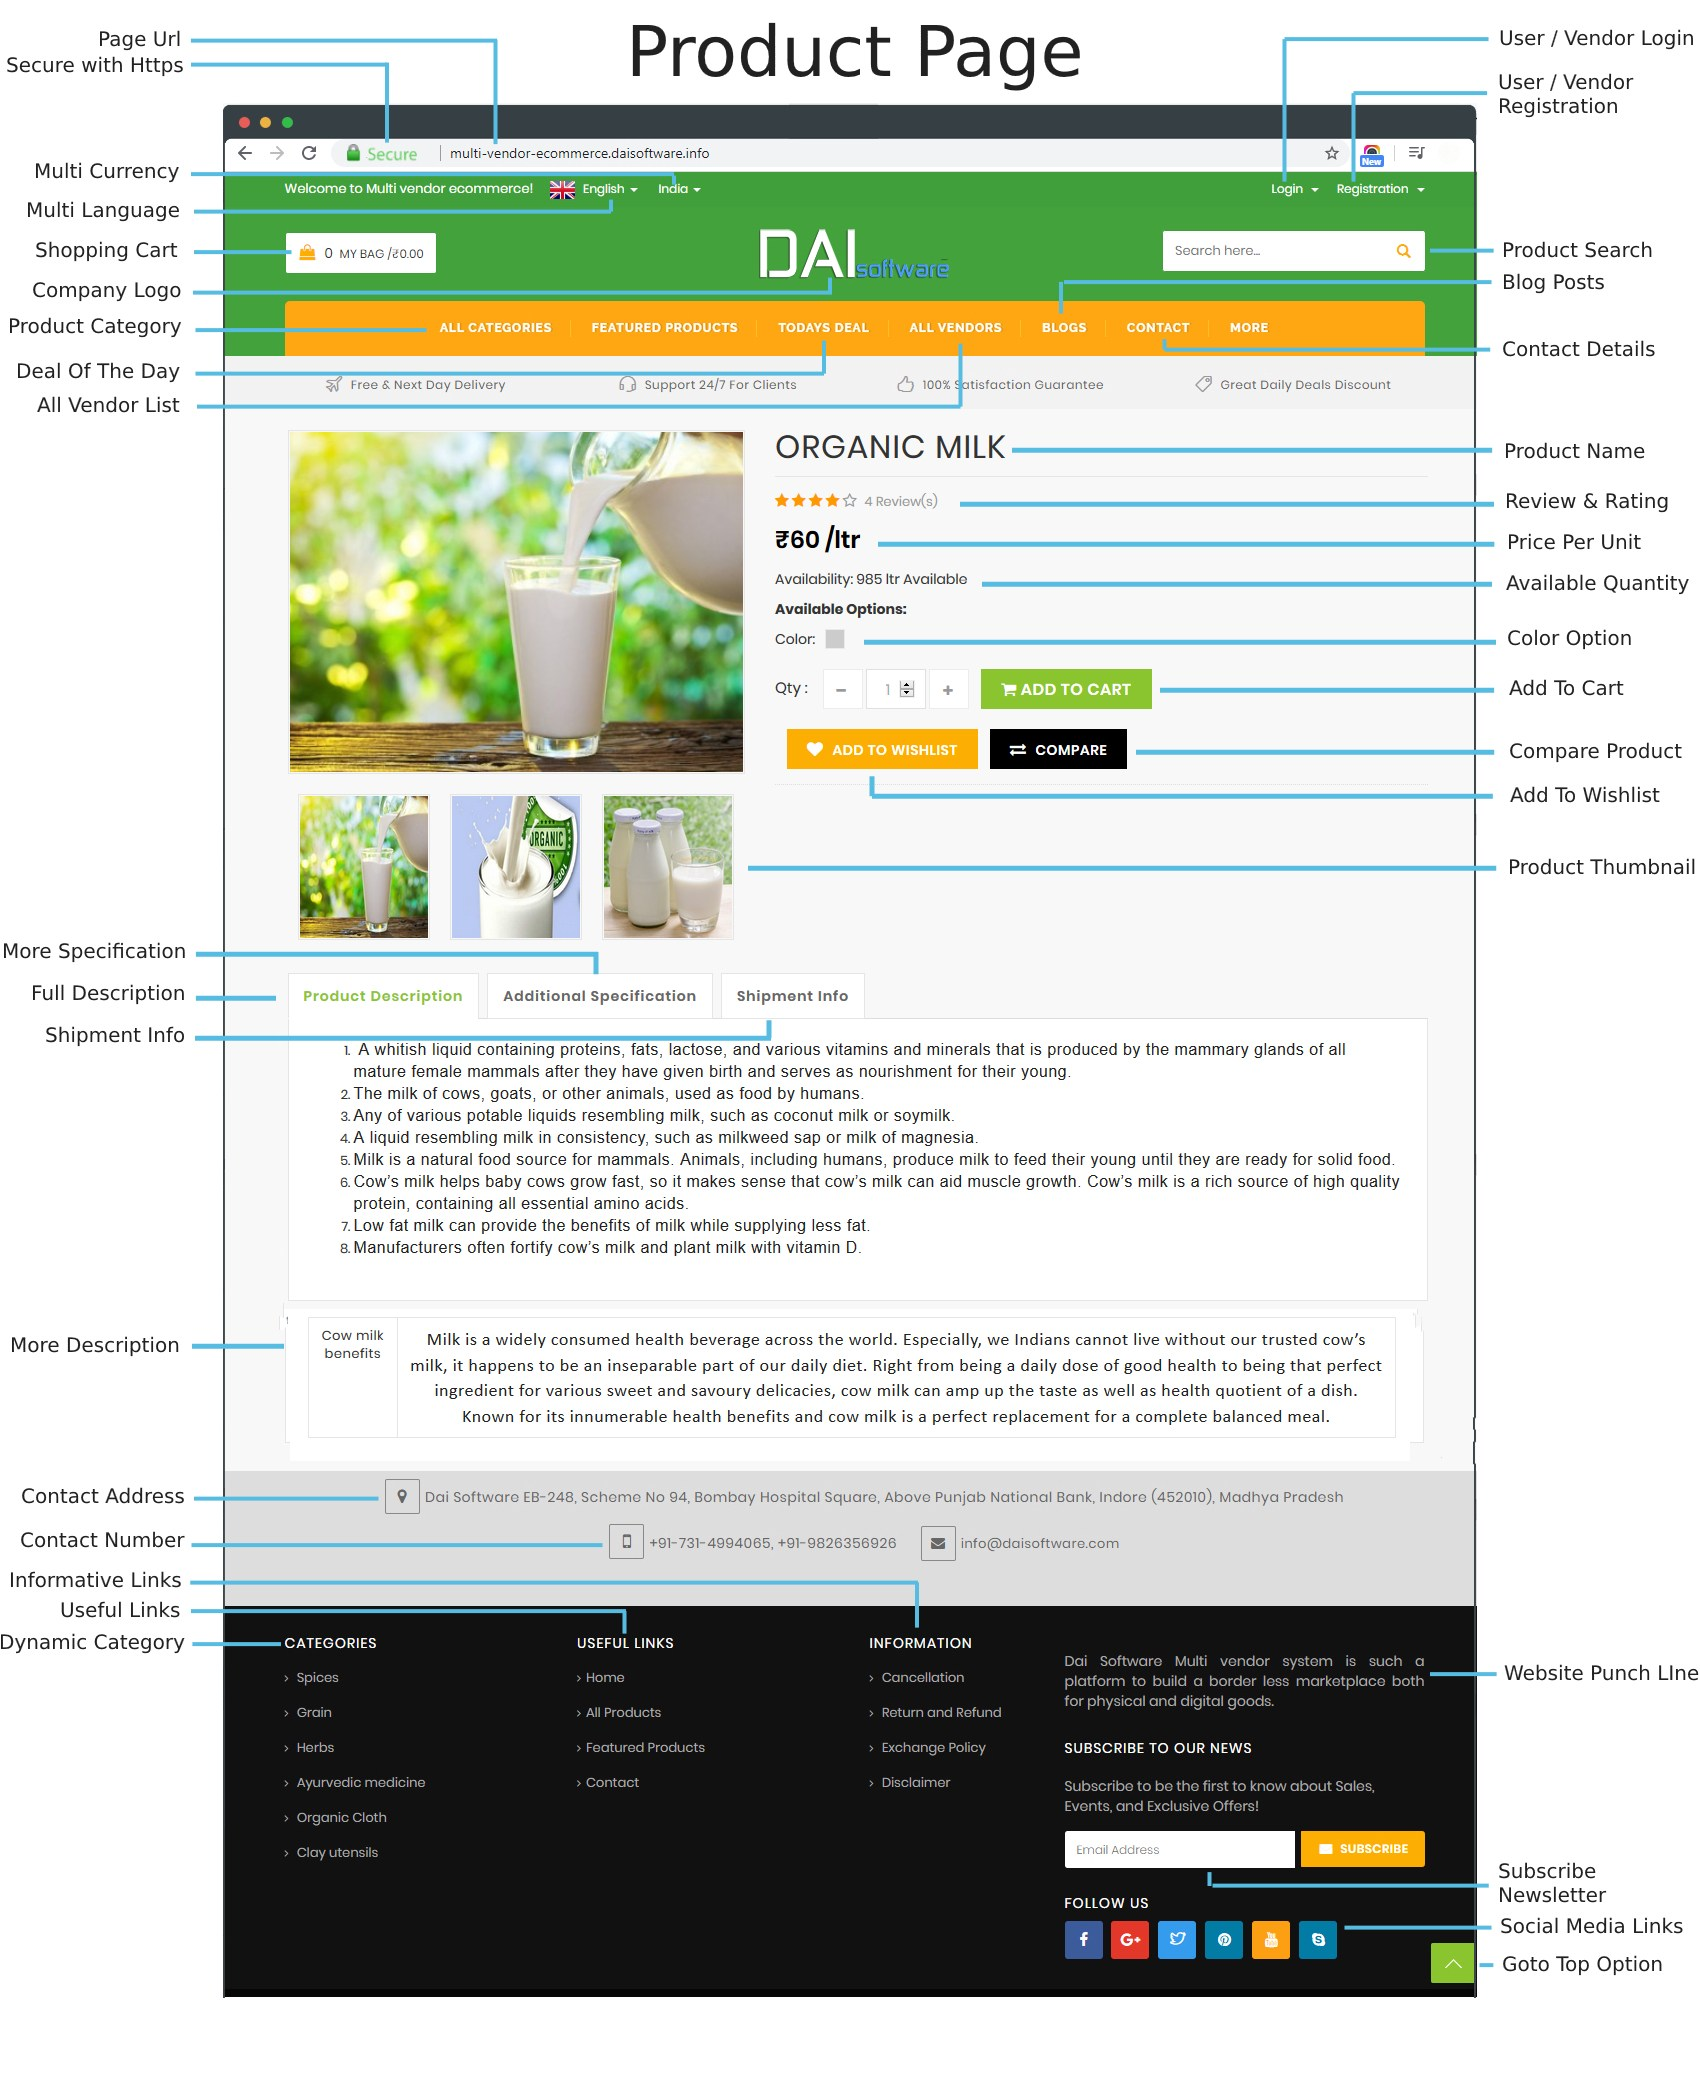 Essential Features of Multi Vendor eCommerce Site Product Page